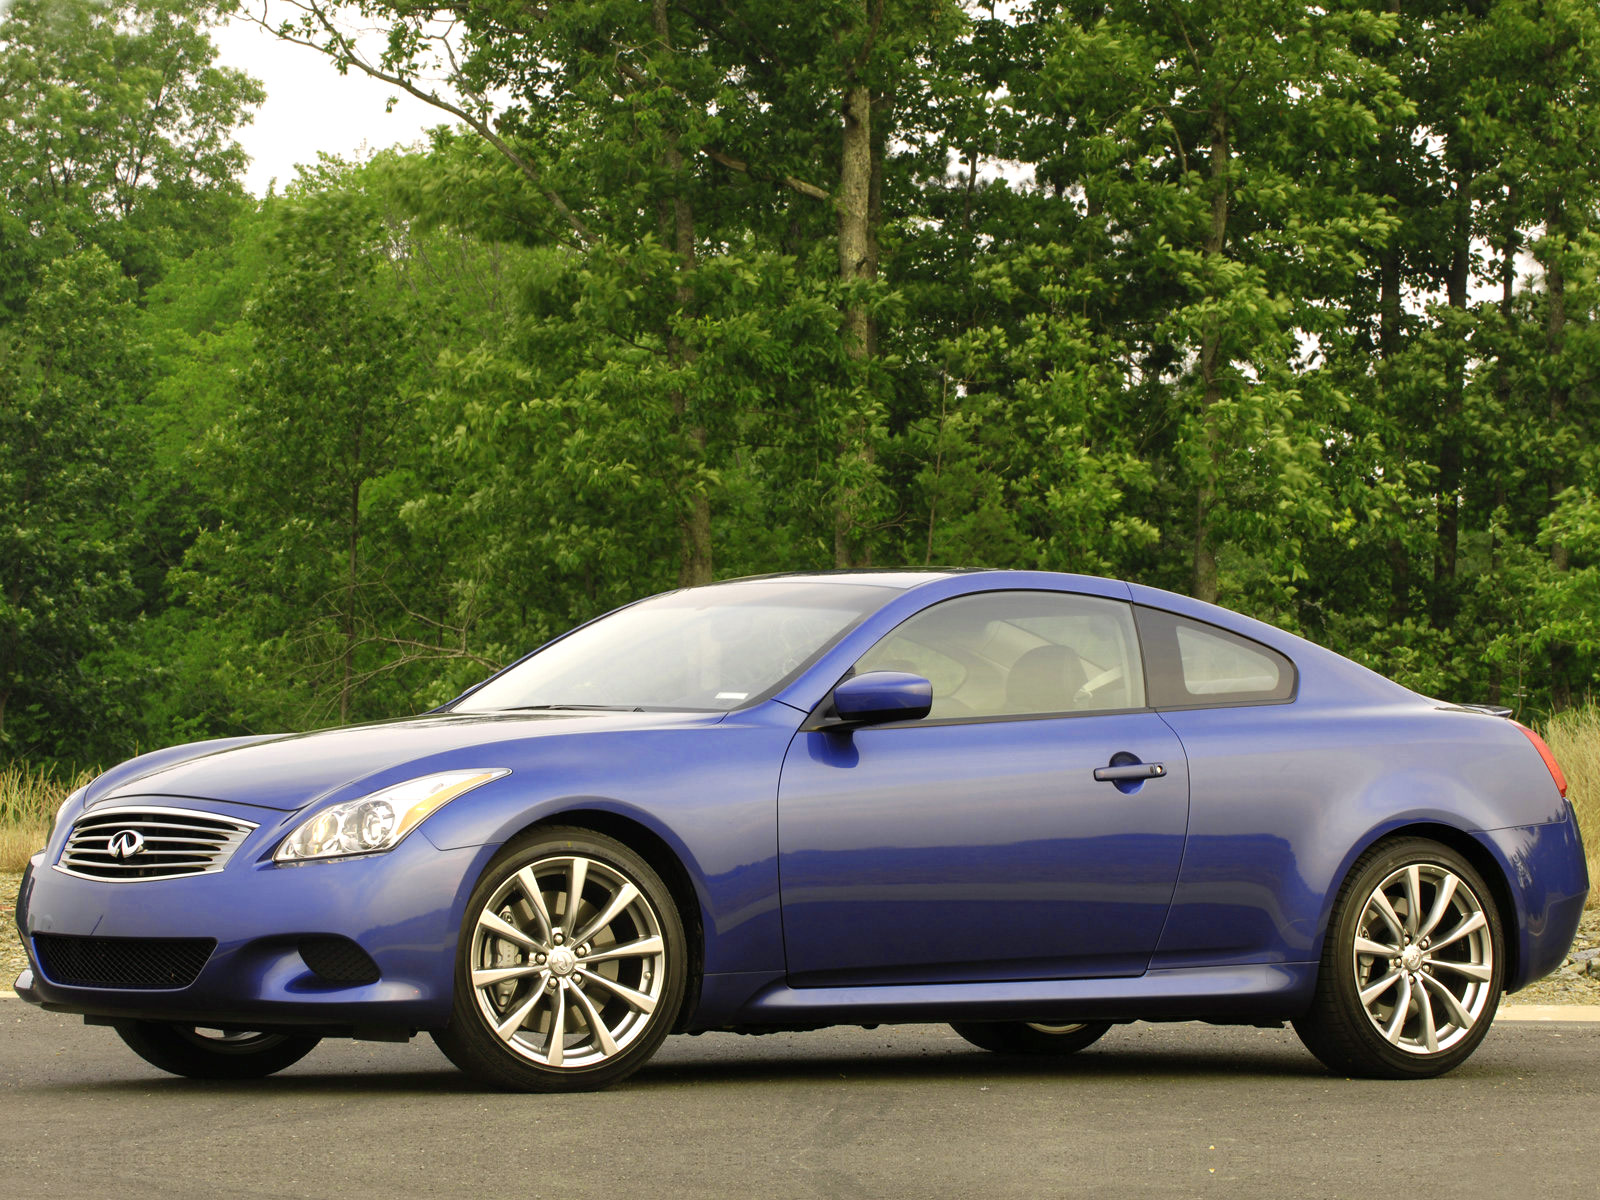 2008 Infiniti G37 Coupe Car Insurance Information Wallpaper Tpms Fuse Box The